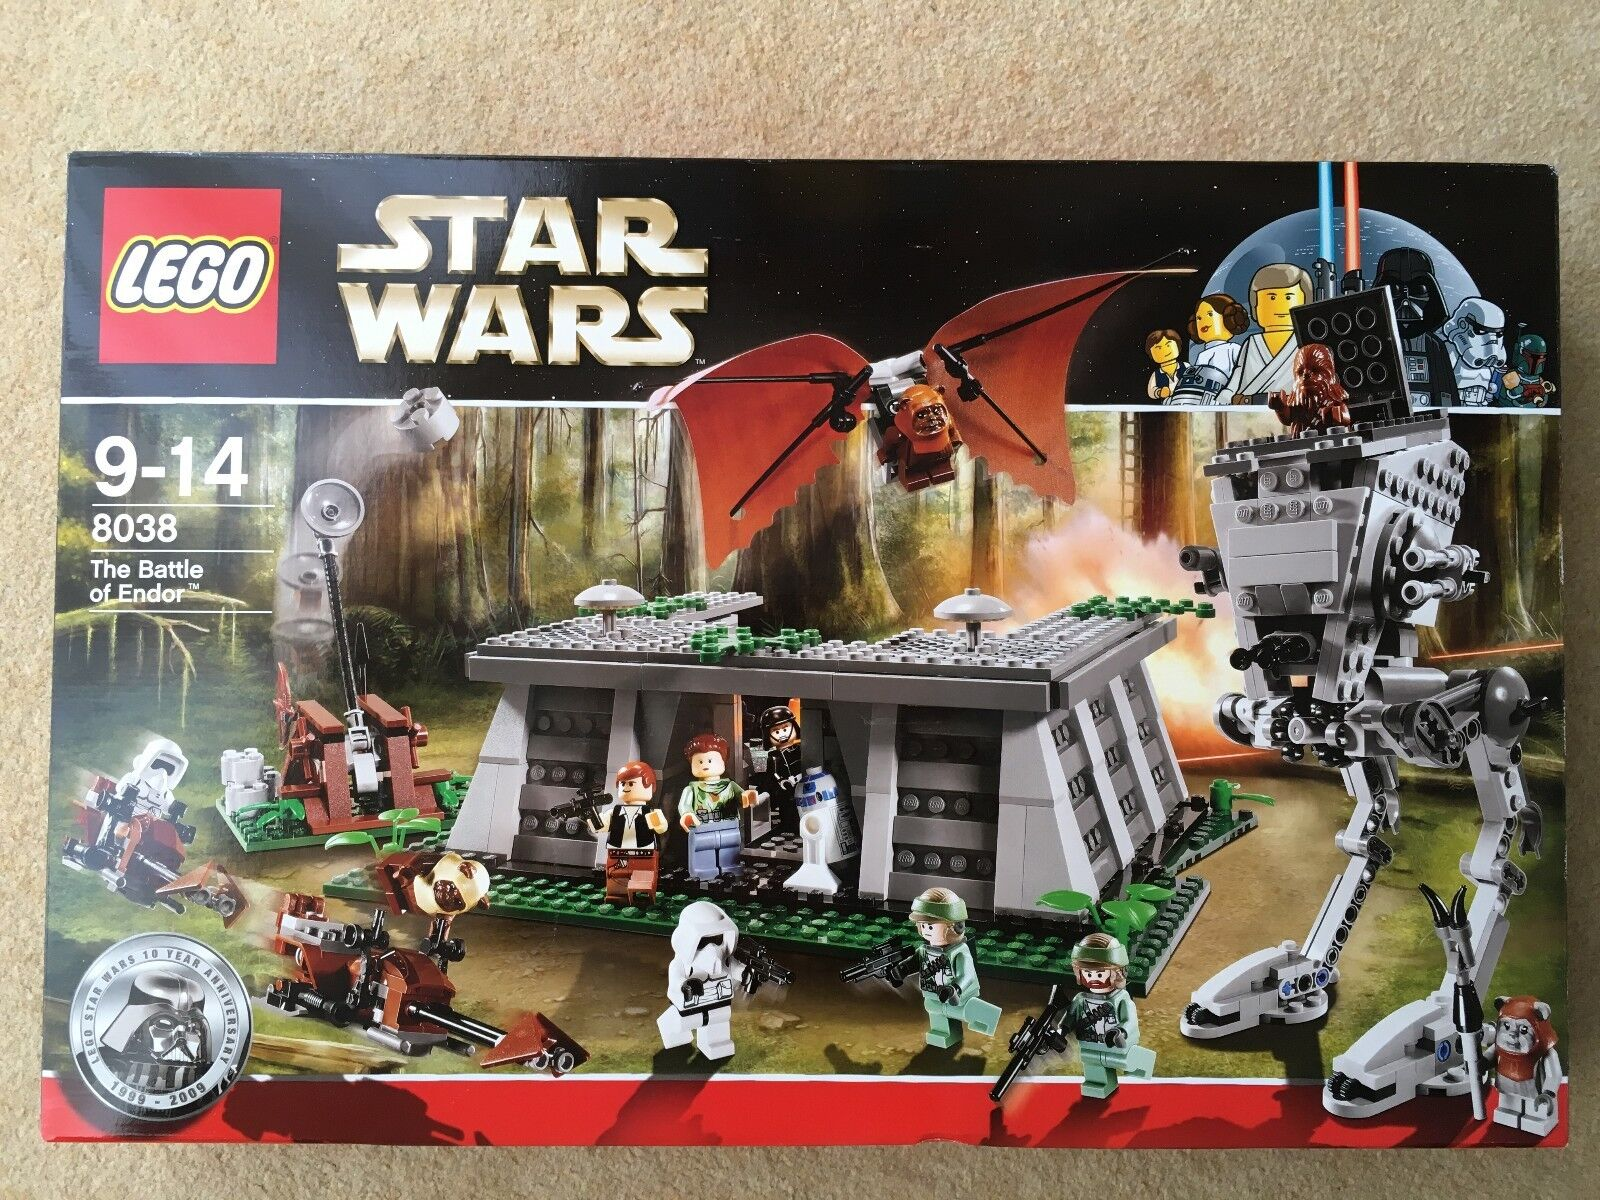 Lego 8038 - Star wars The battle of Endor - Near mint new condition 2009